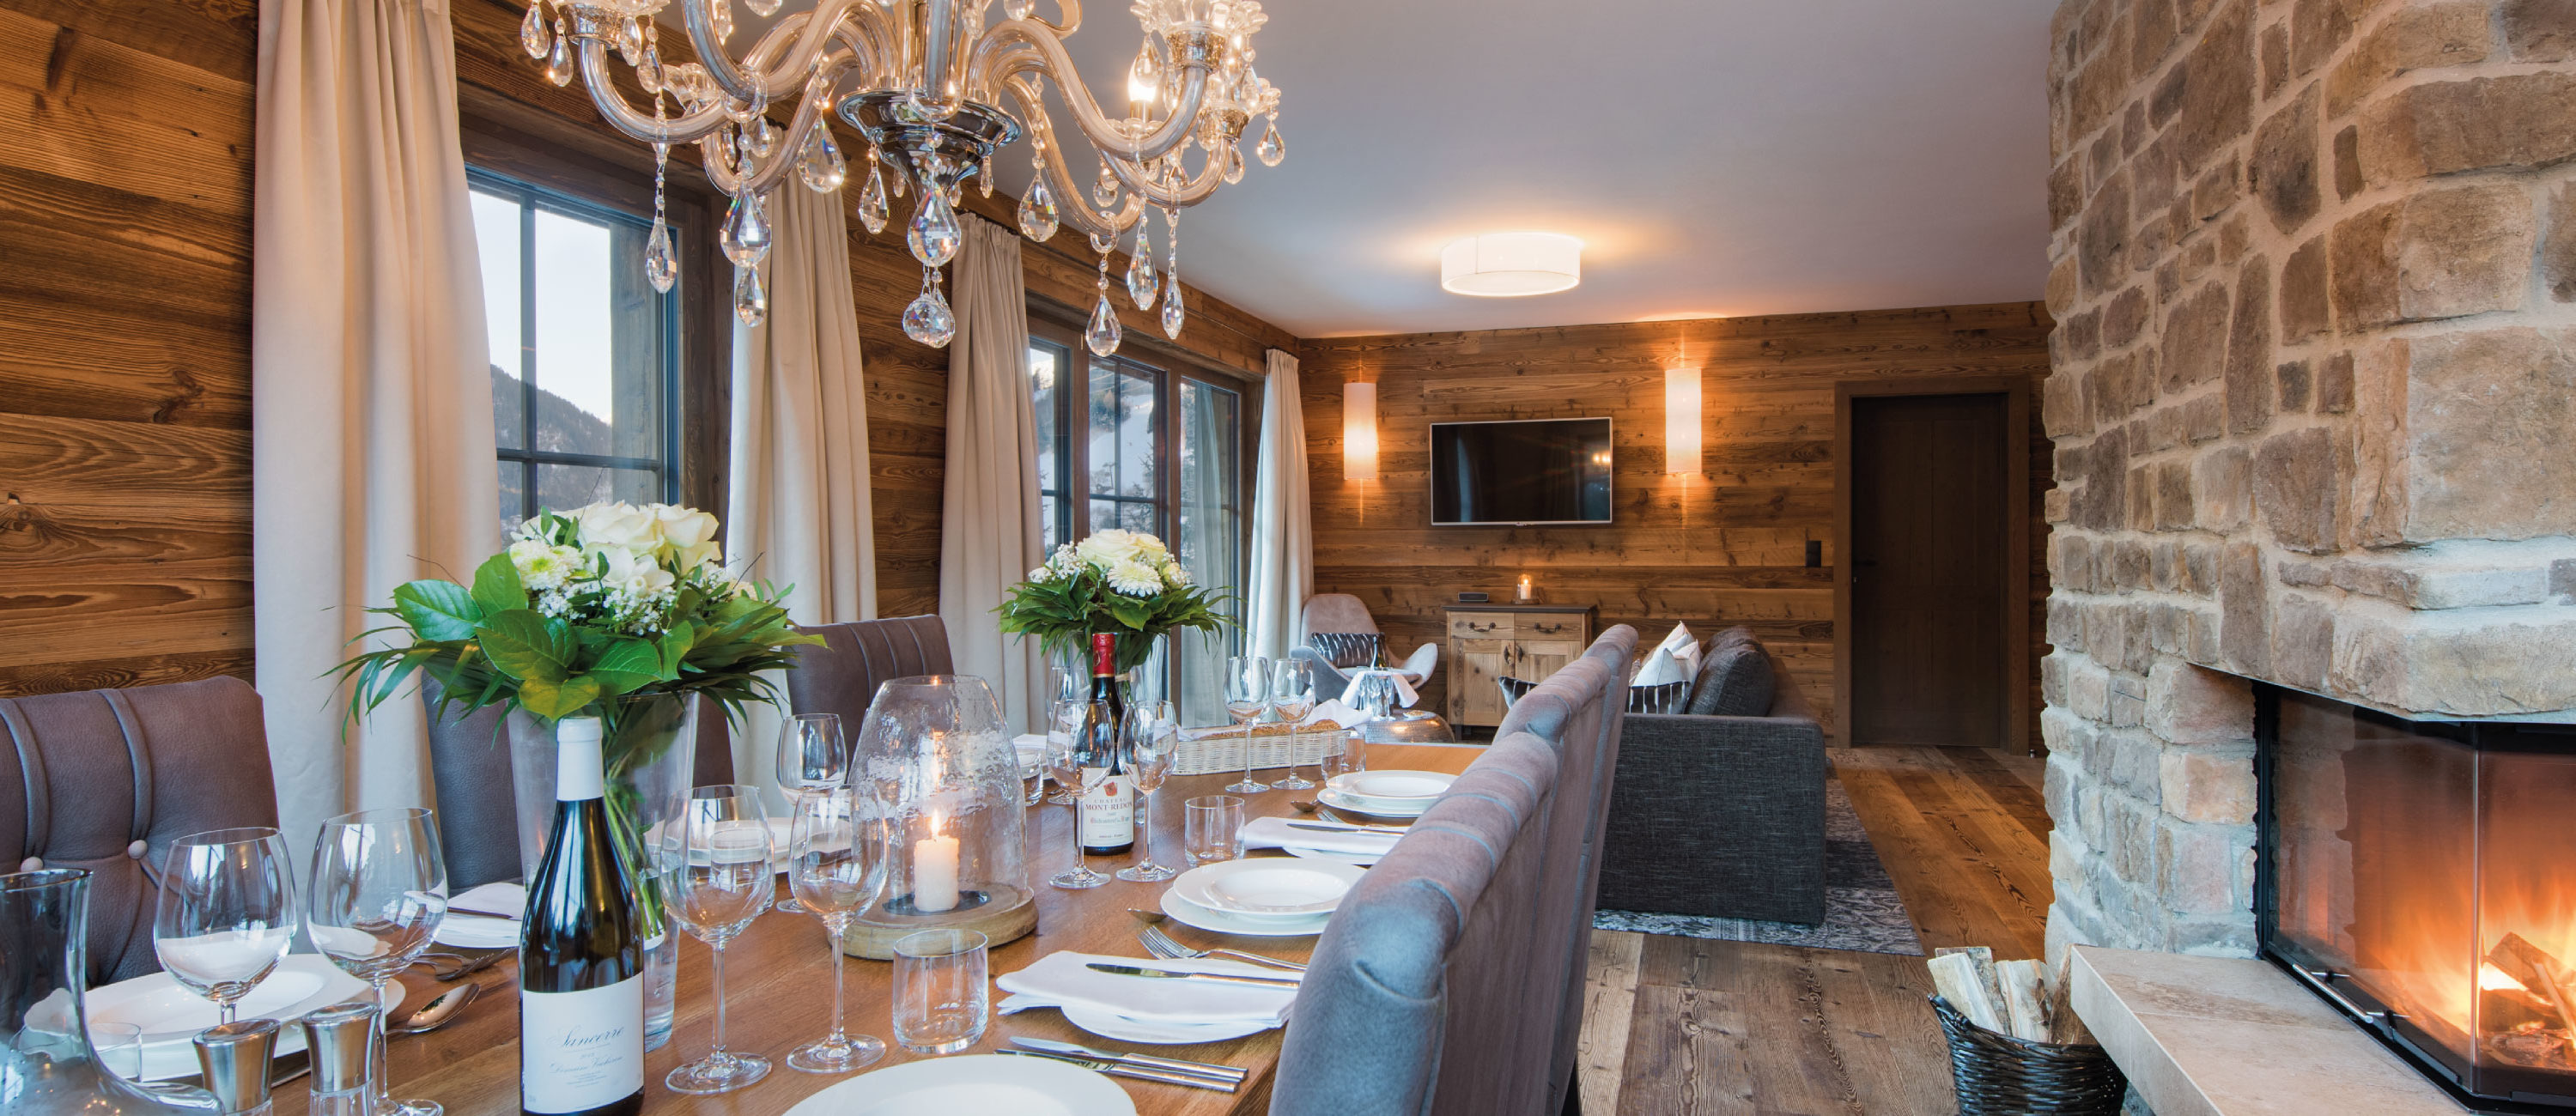 Chalet Zari Dining Room with Open Fireplace in Eden Rock, St Anton